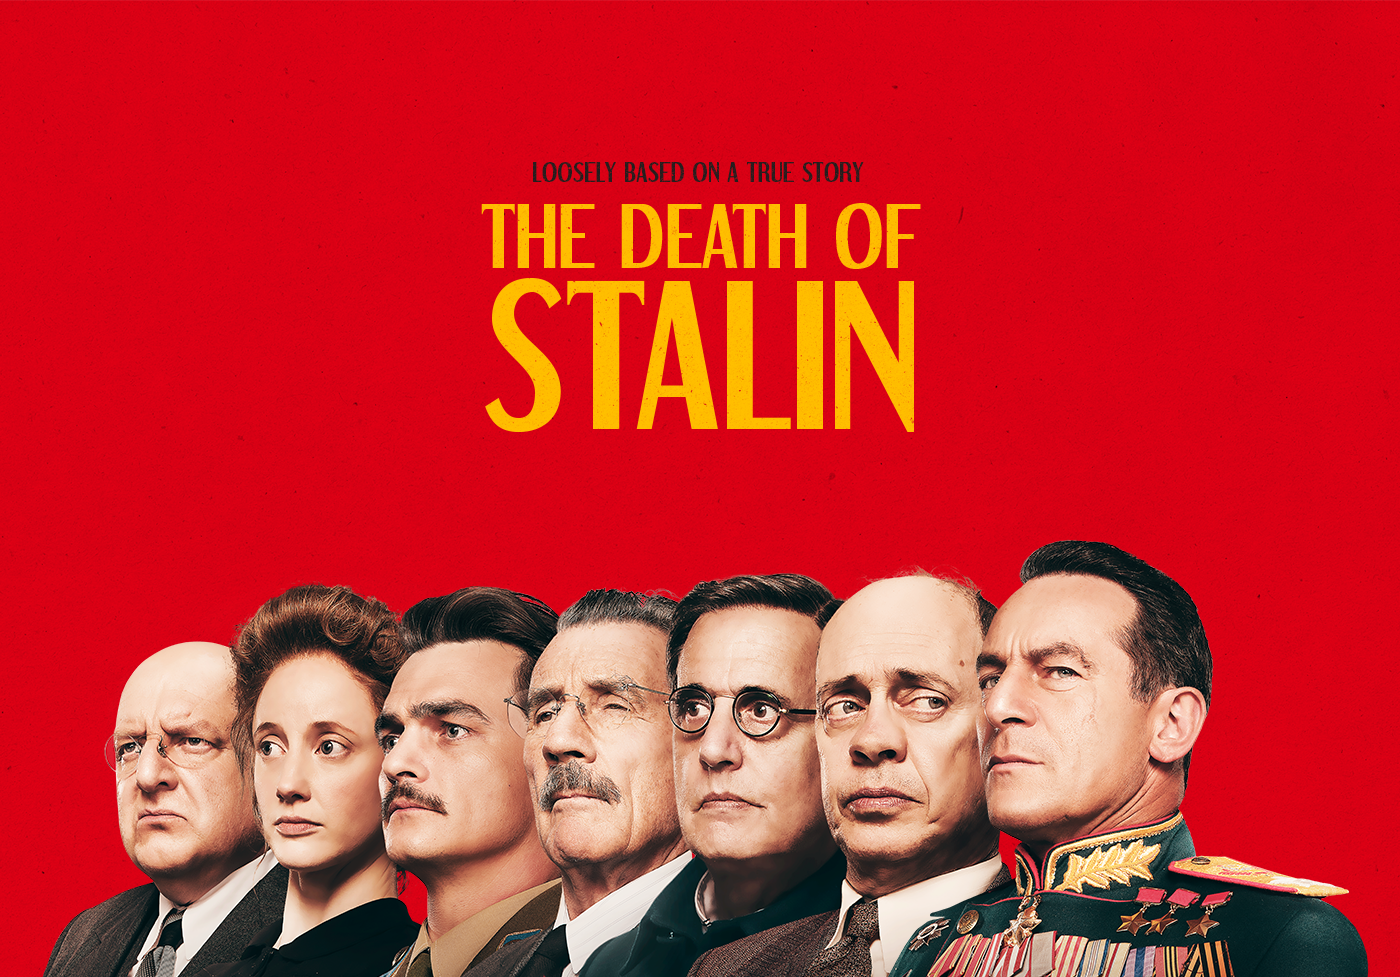 Image Media for THE DEATH OF STALIN